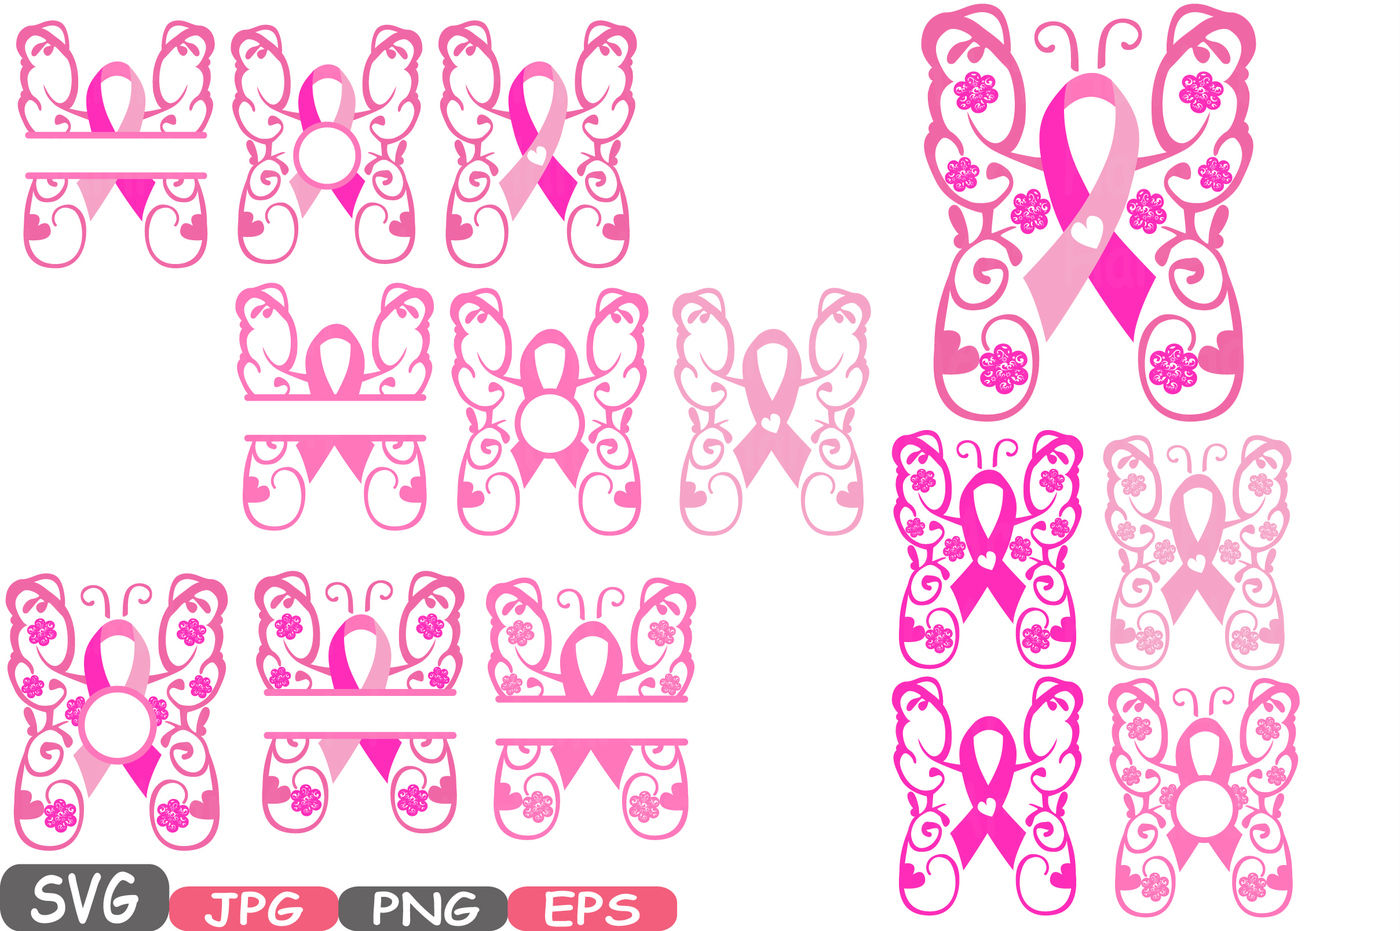 Breast Cancer Butterfly Svg Cricut Silhouette Swirl Props Cutting